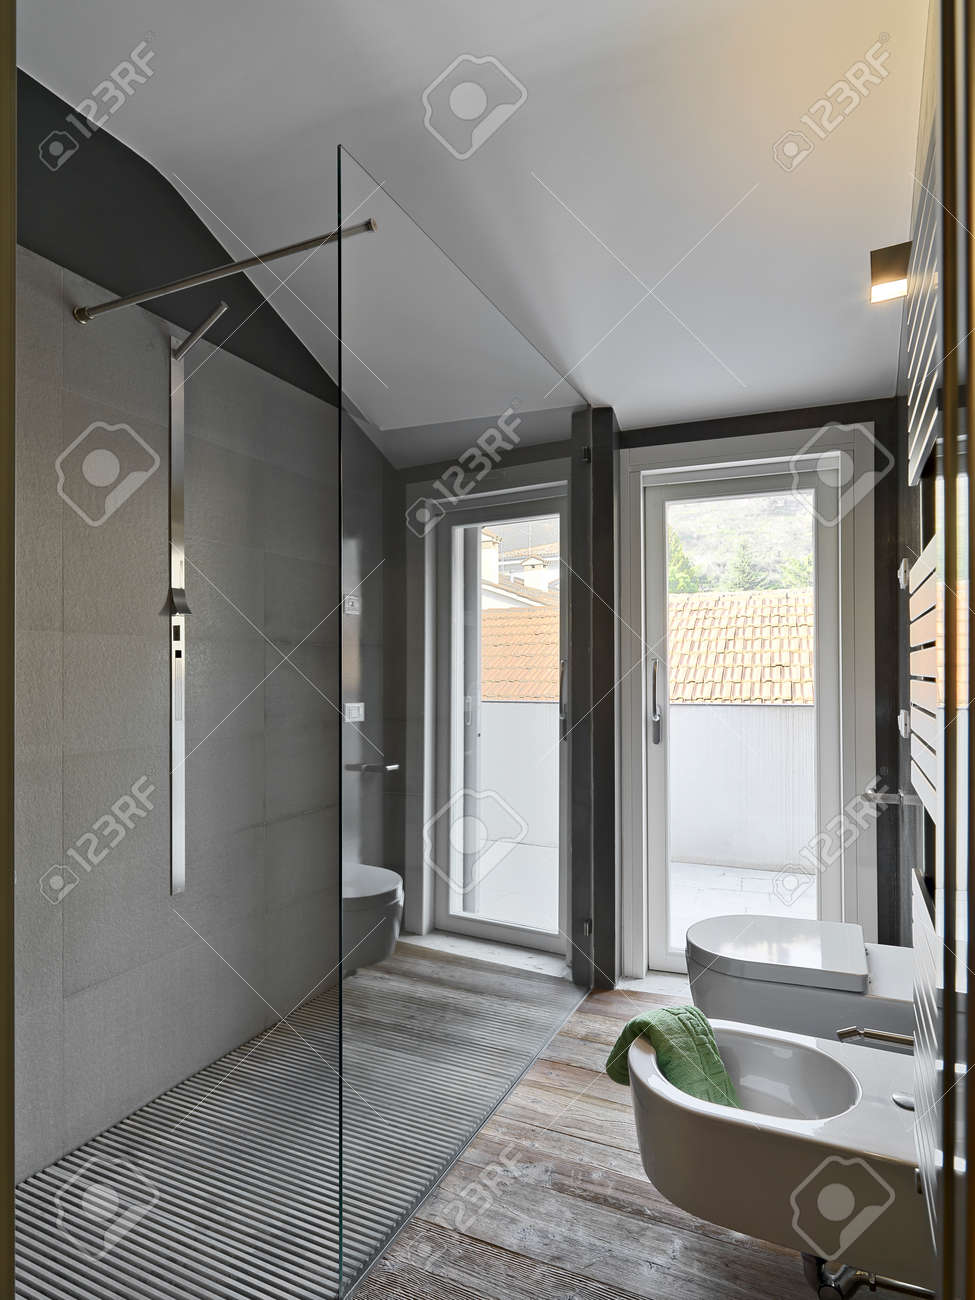 Glass Shower Cubicle In A Modern Bahtroom And Sanitary Ware Stock ...